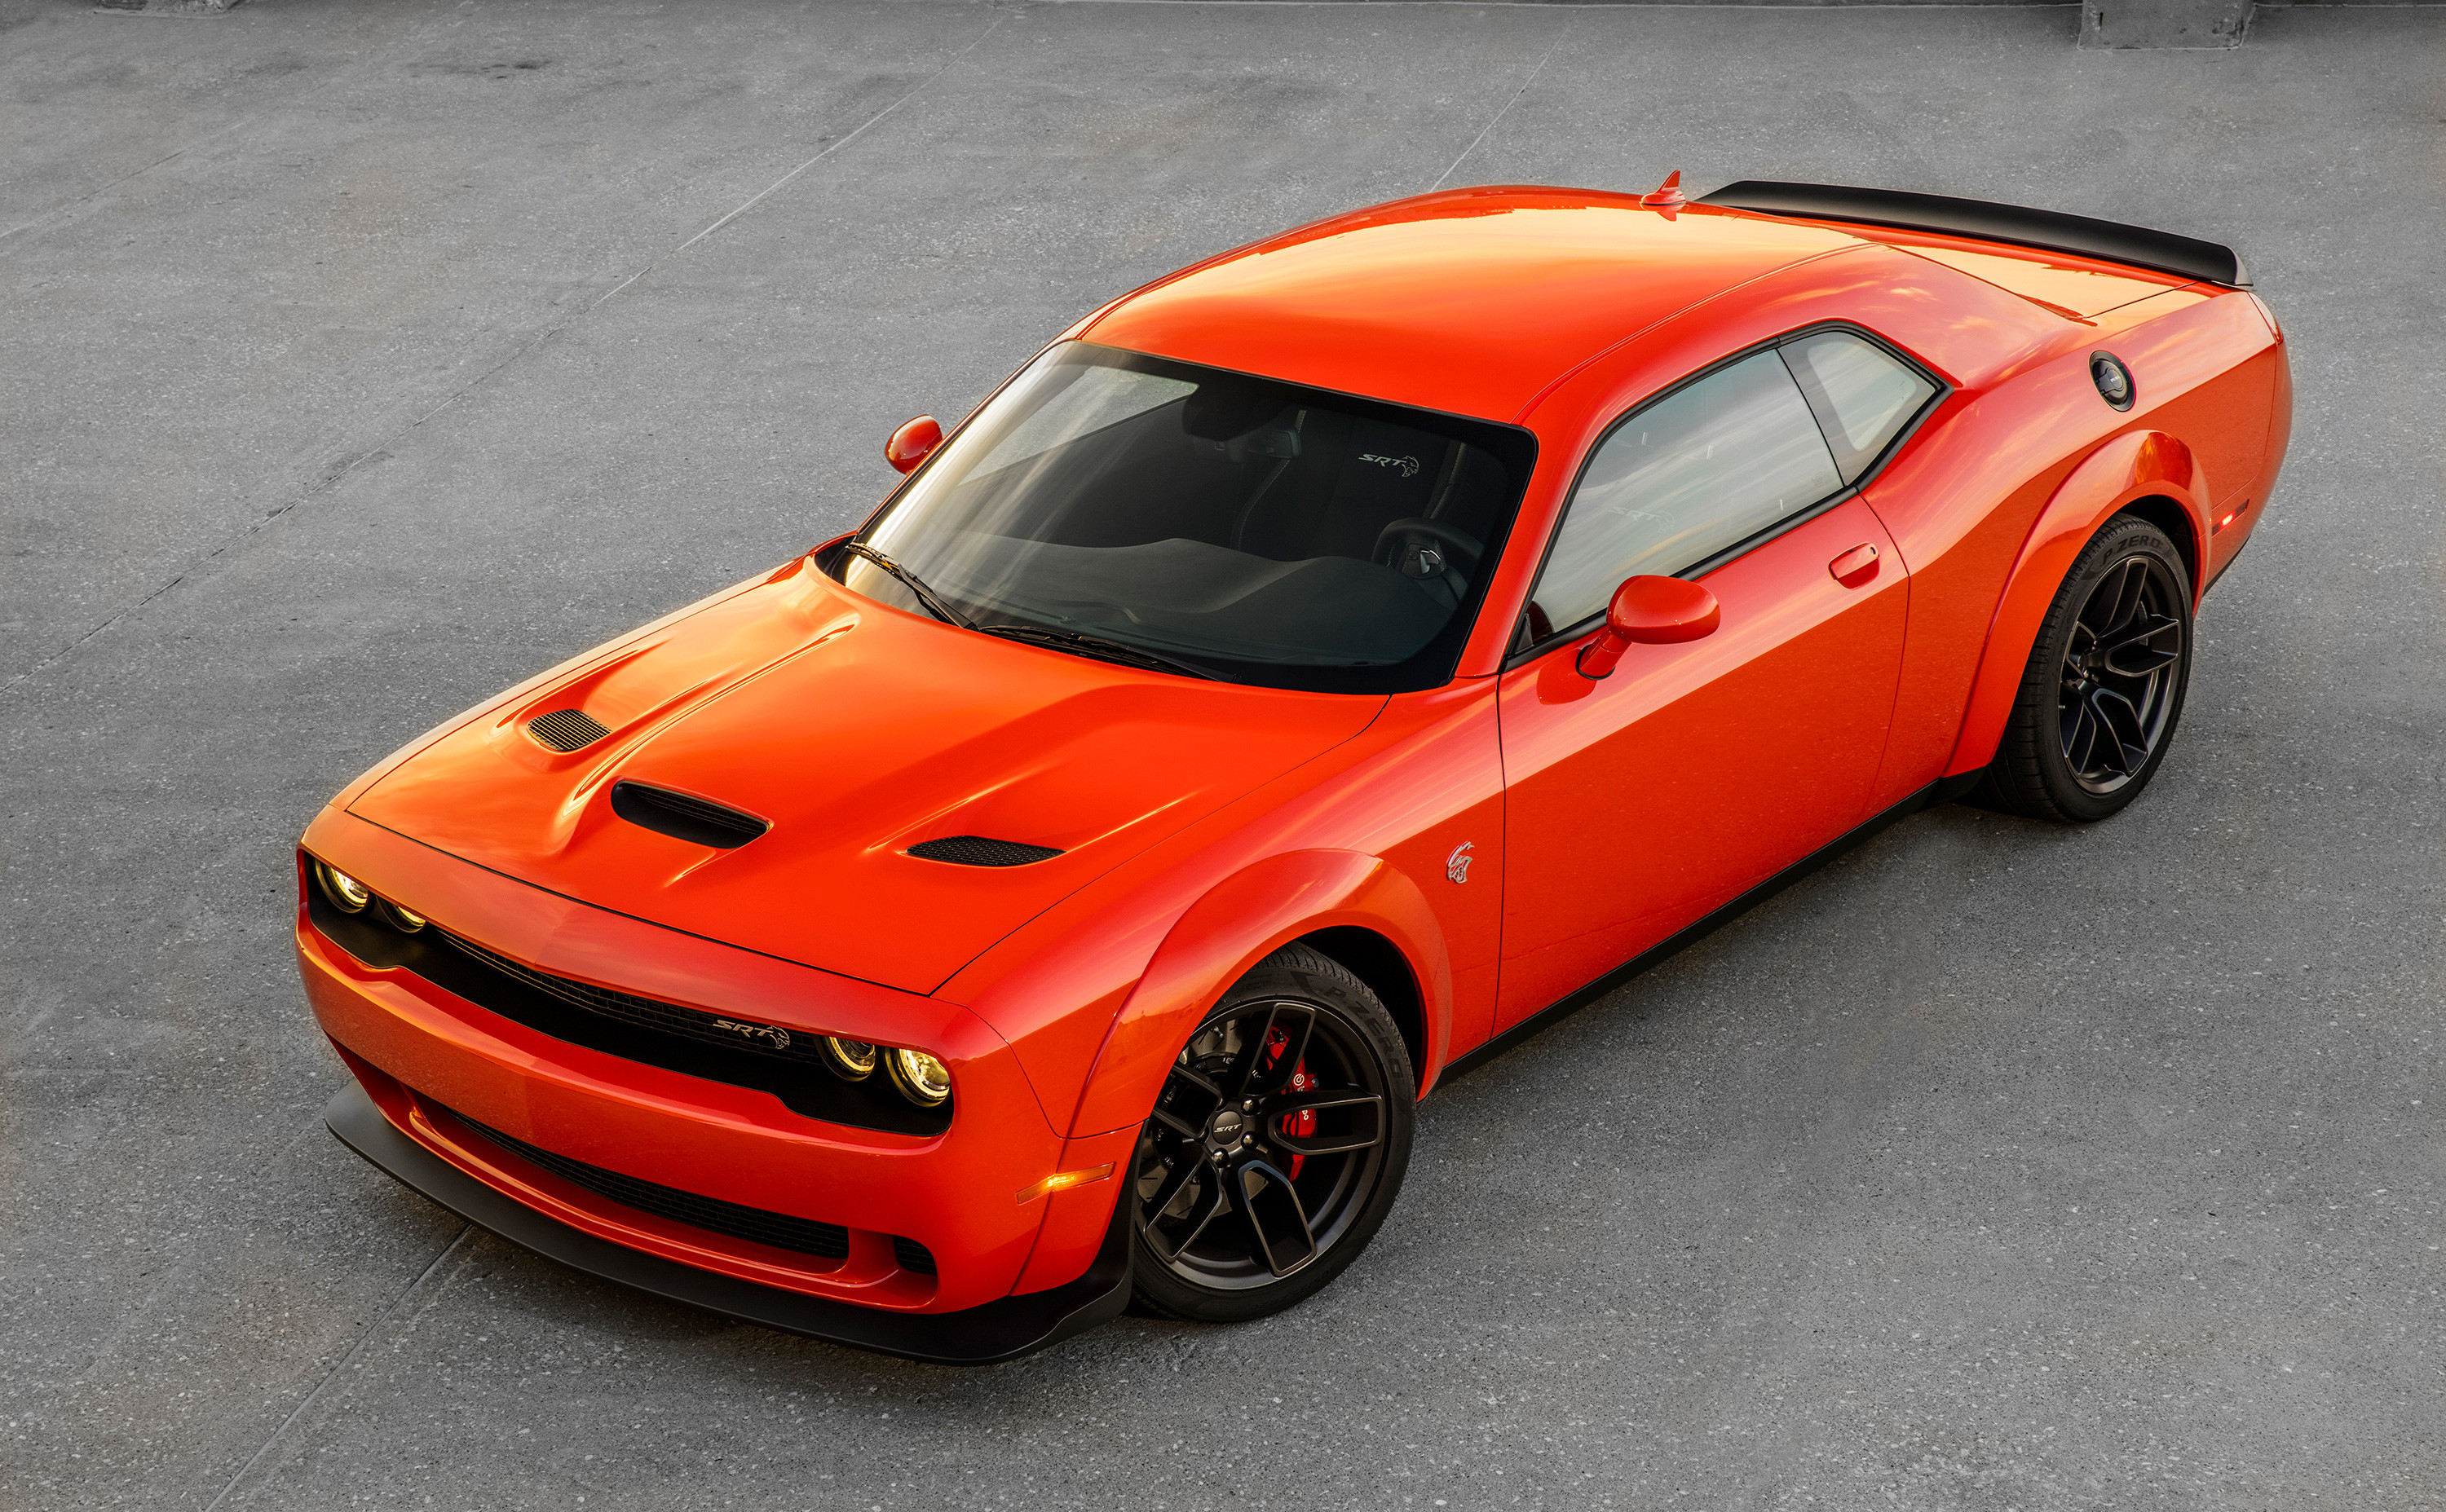 Res: 3000x1855, Dodge Challenger SRT Hellcat Widebody 2018 4k